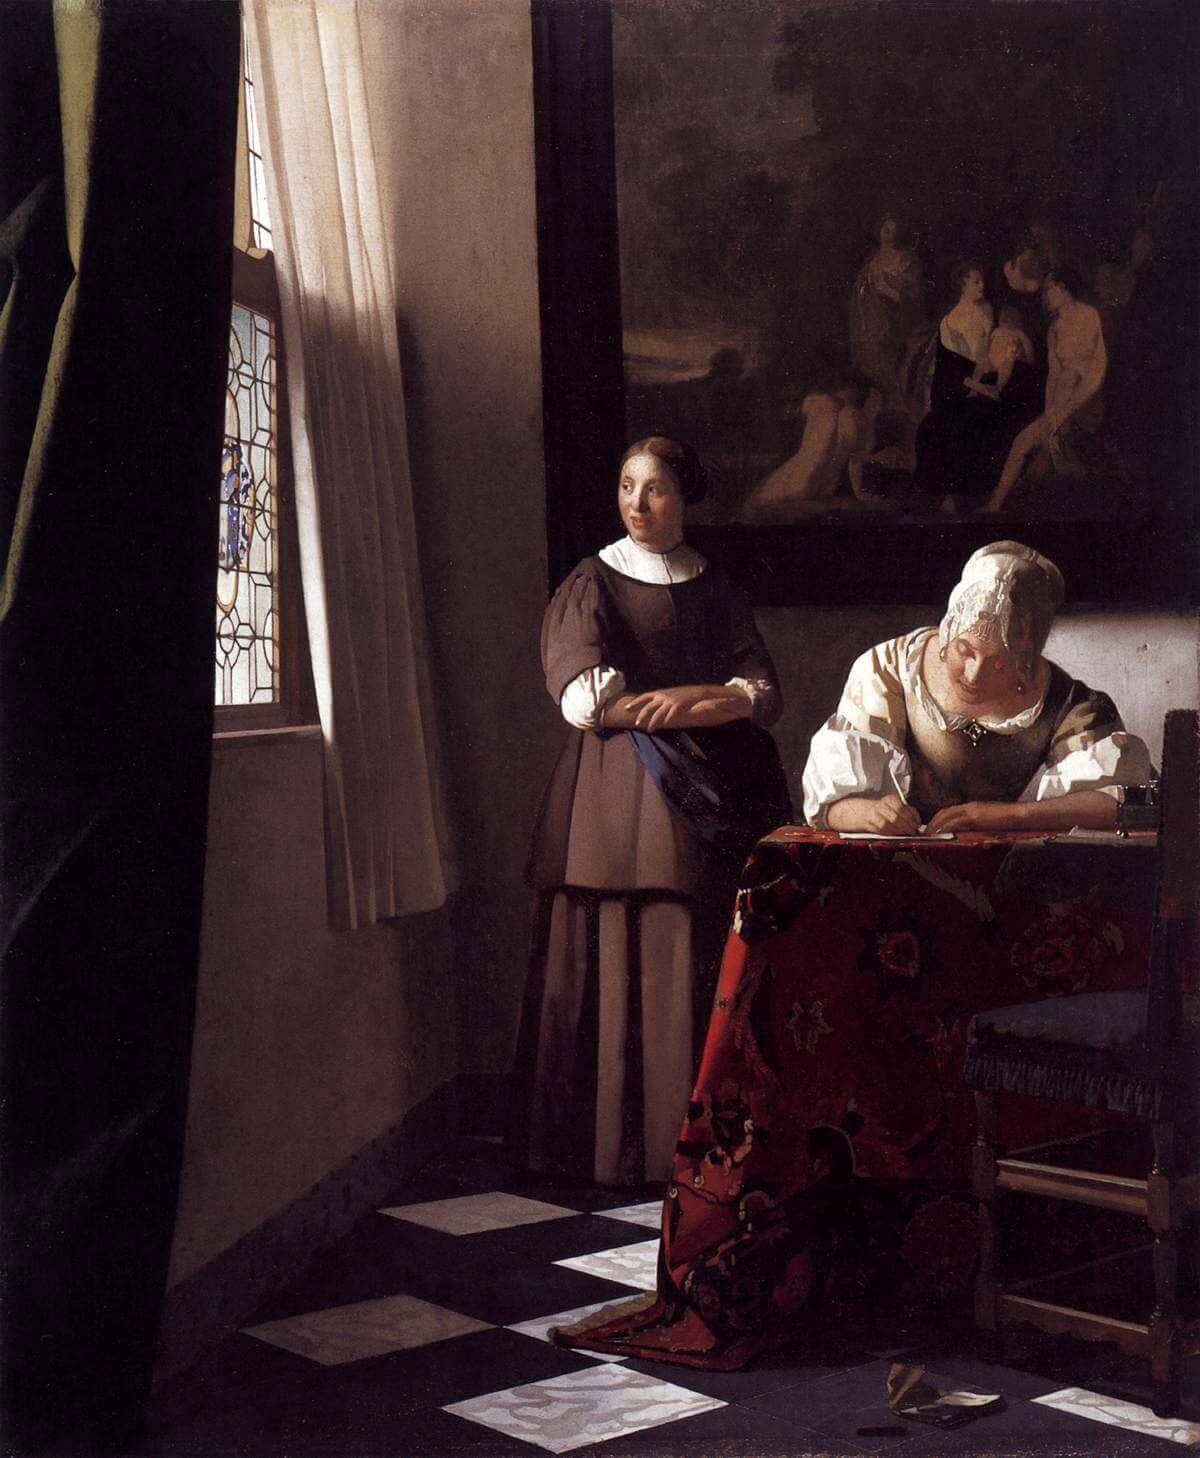 Lady Writing a Letter with Her Maid, 1670 by Johannes Vermeer